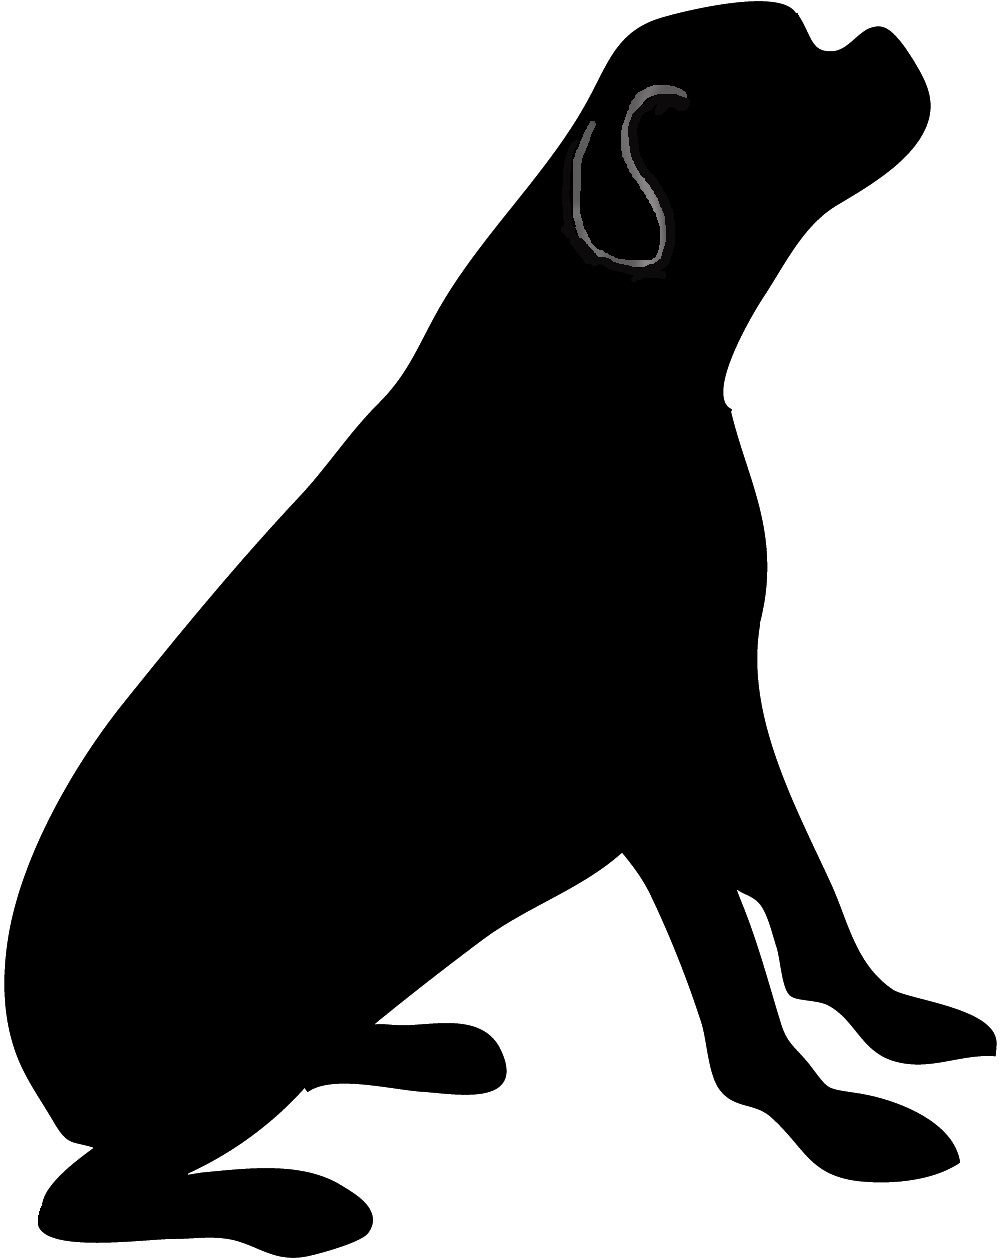 Dog Silhouette - Free Printable Dog Silhouettes